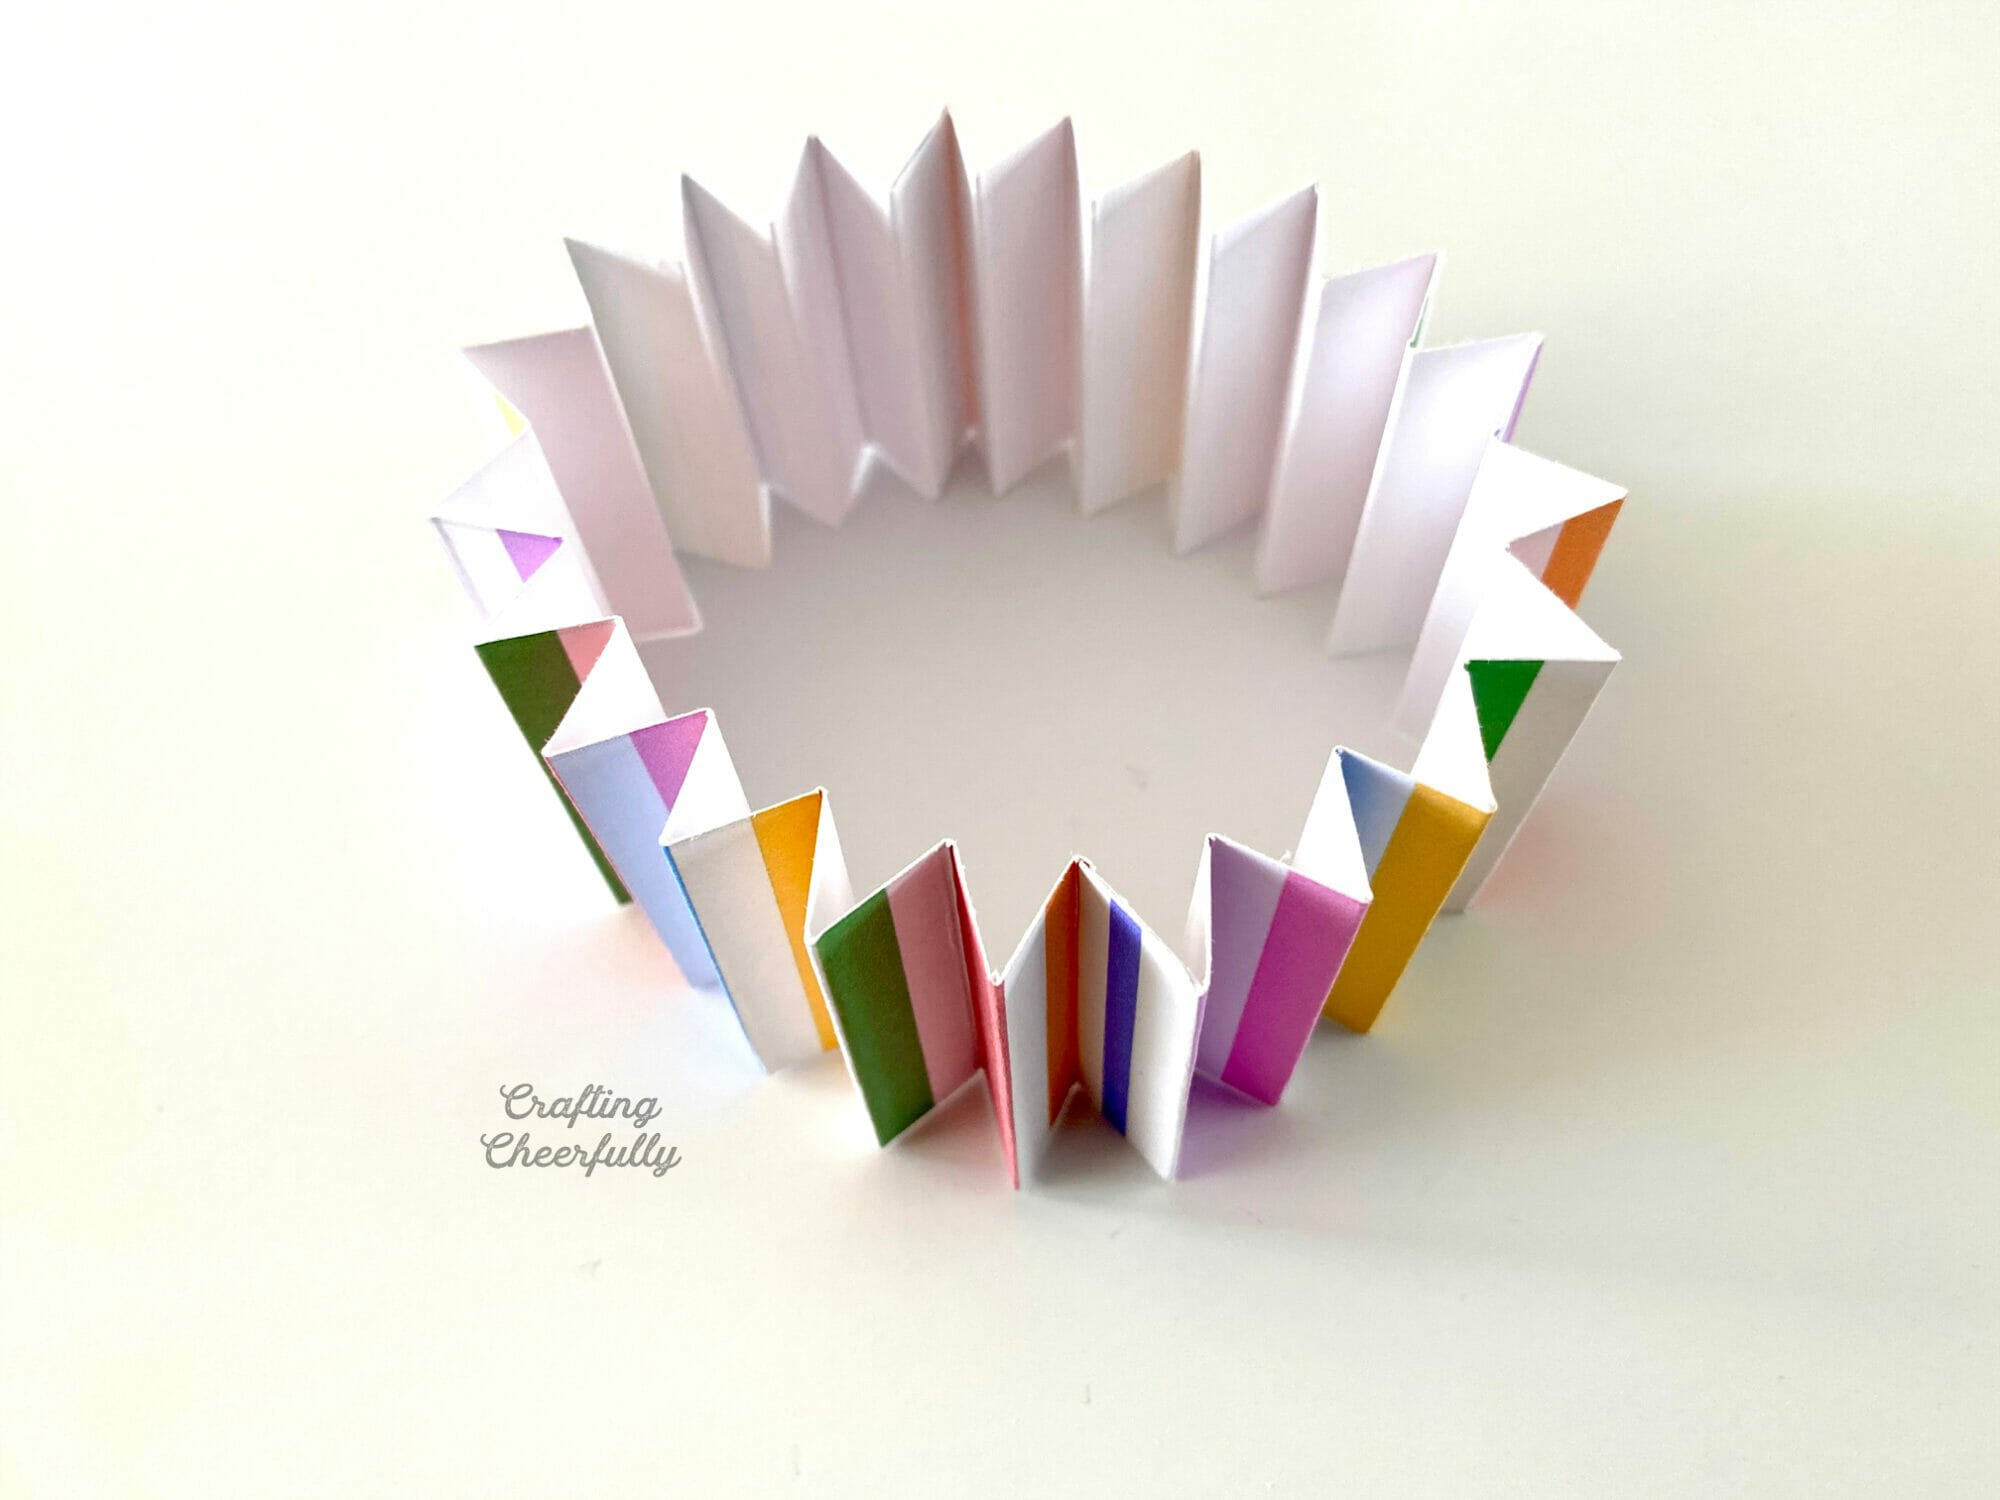 Piece of accordion-folded paper connected in a circle.